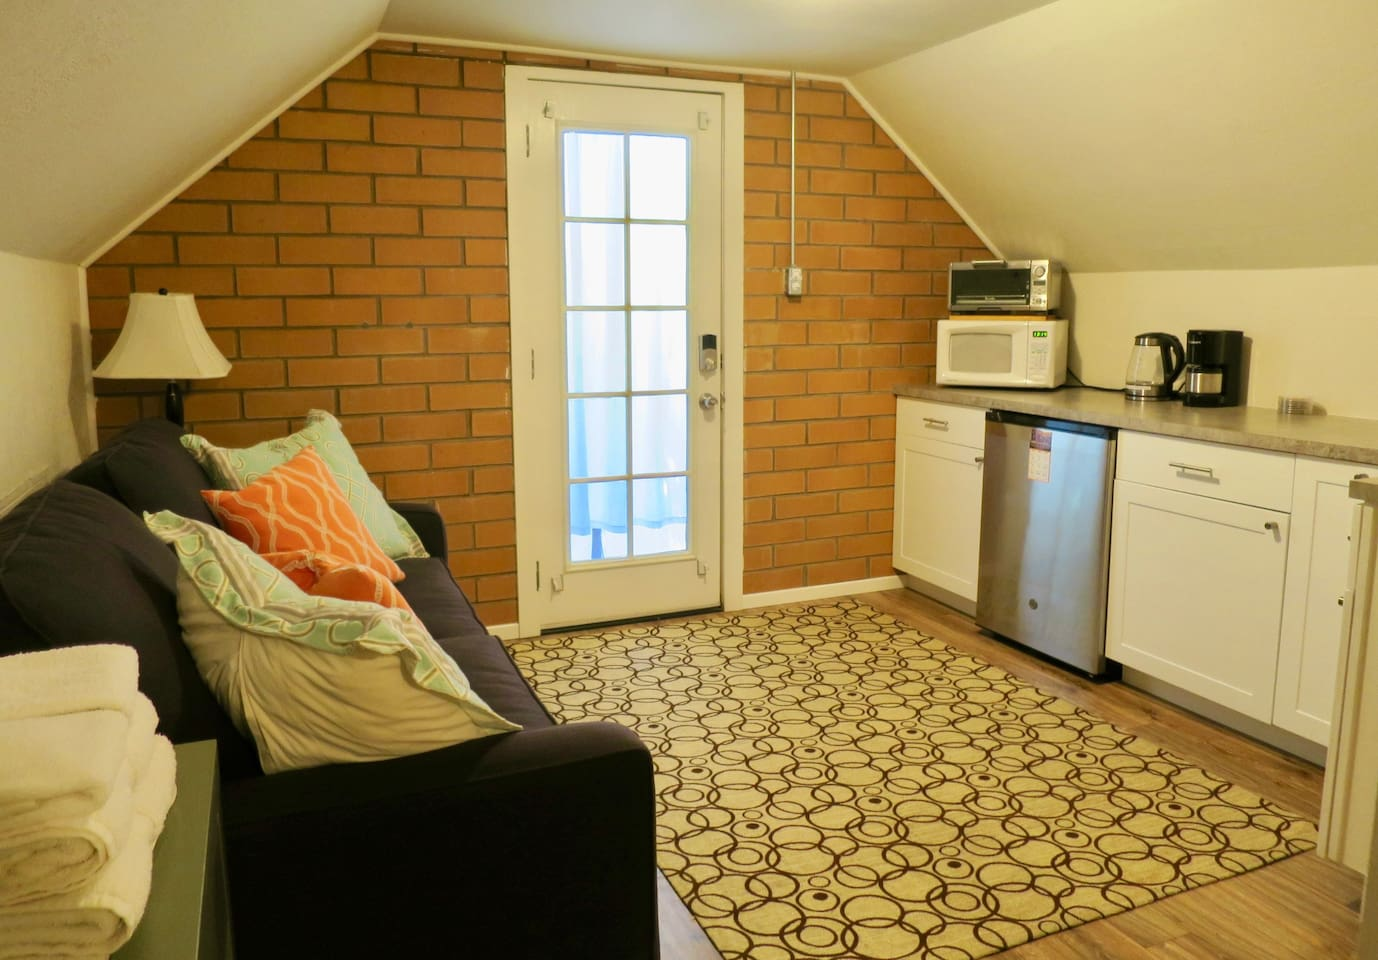 Living room area with kitchenette. Refrigerator, microwave, toaster oven, tea kettle, coffee maker & stainless kitchen sink. Also includes cutting board, plates, bowls, cups, mugs and utensils.  Please note: There is NO TV in the suite